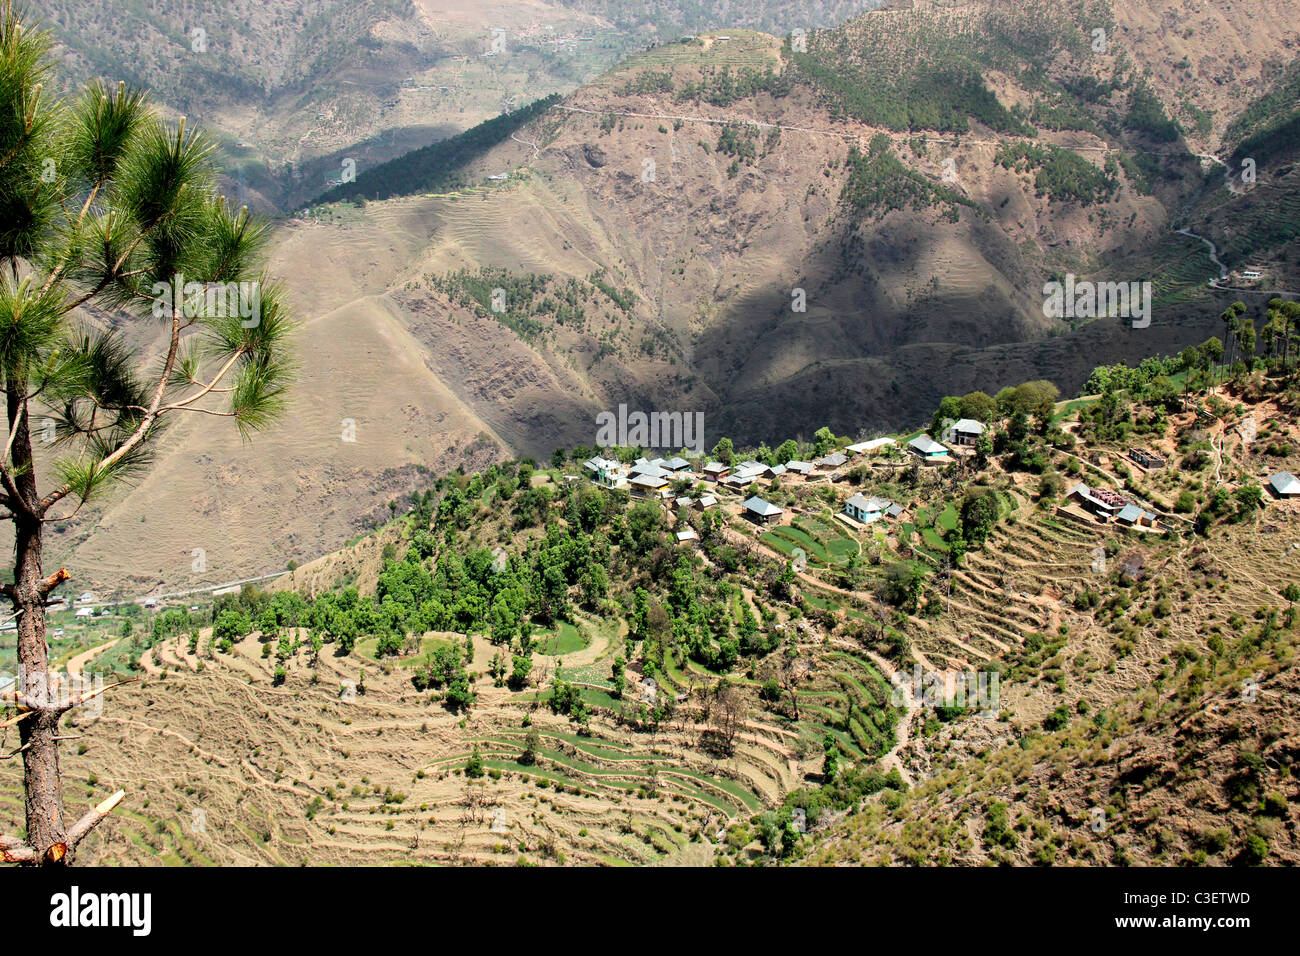 A view of stepped cultivation in Kulu Manali, Himachal Pradesh,india - Stock Image